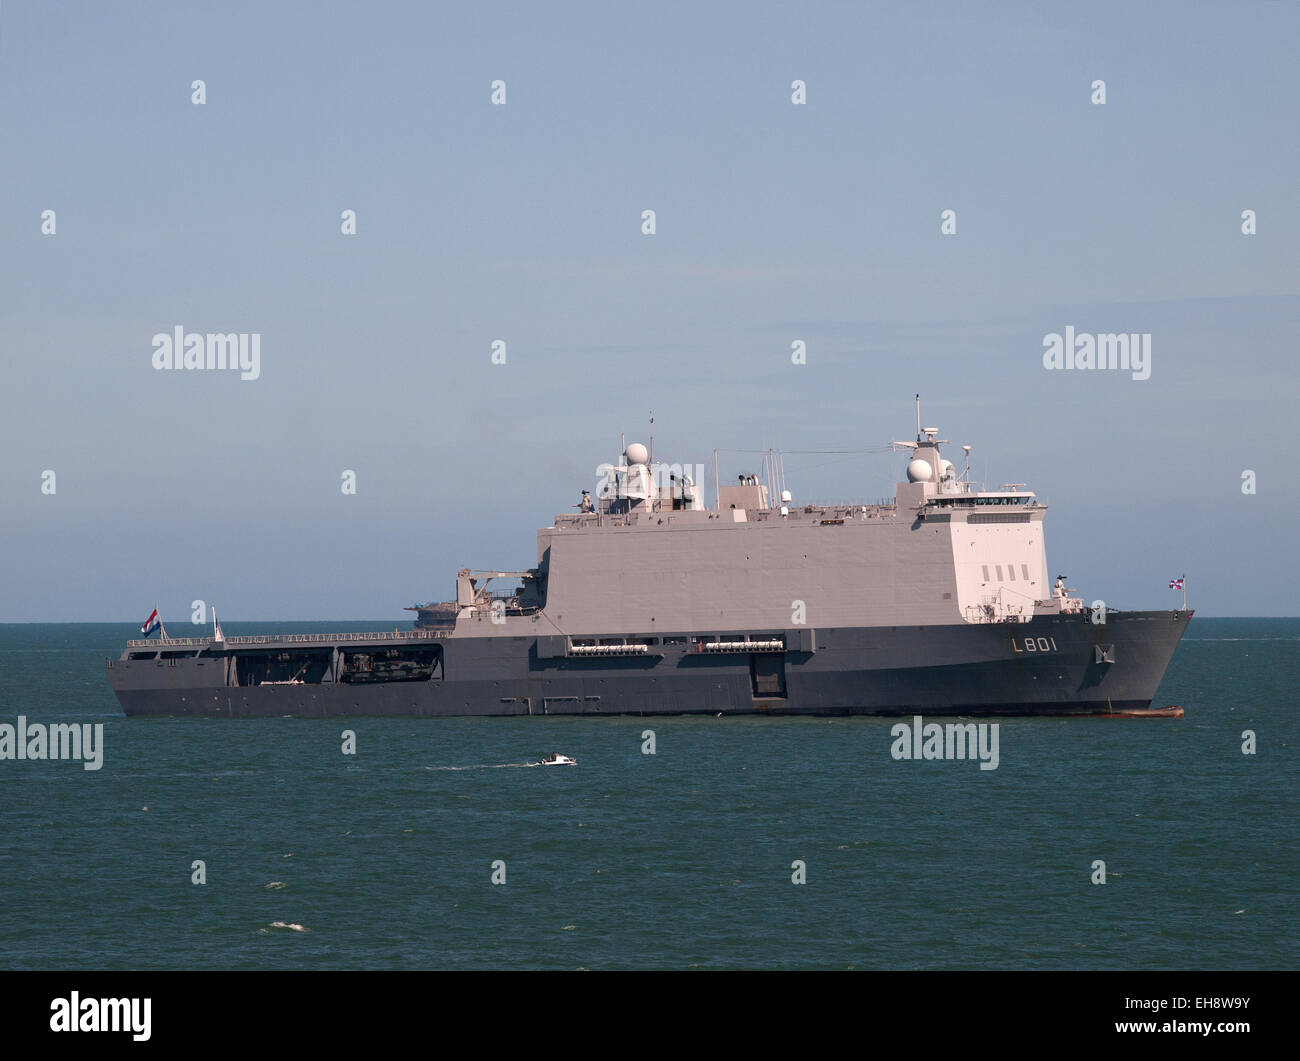 HNLMS Johan de Witt (L801) amphibious warfare ship of the Royal Netherlands Navy anchored in the Solent off Portsmouth - Stock Image